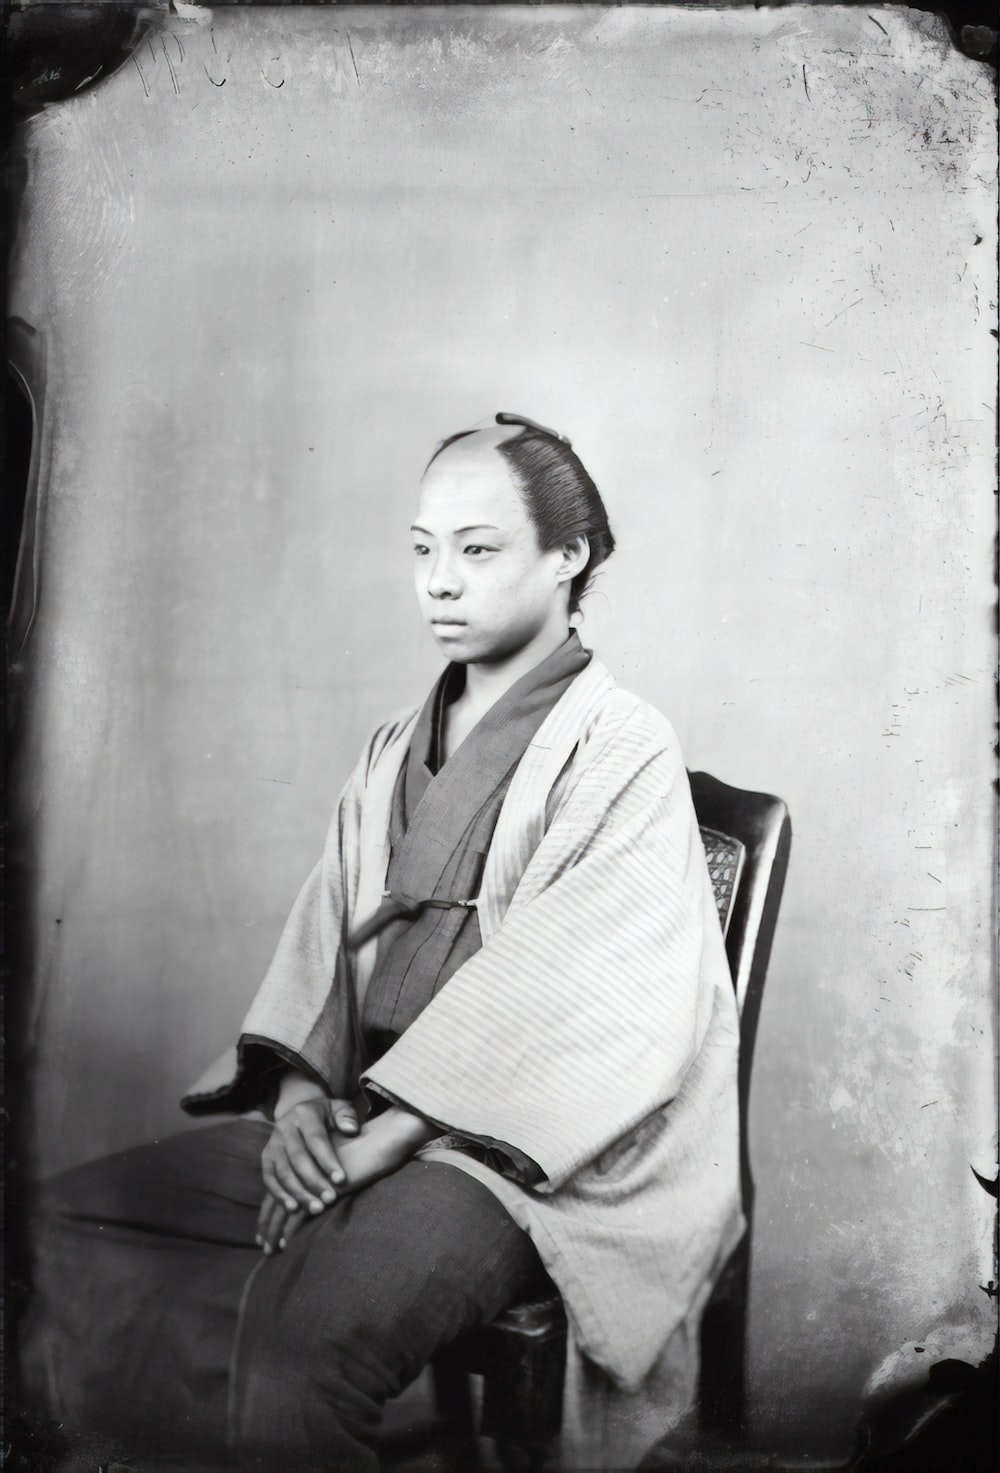 woman in white robe sitting on chair